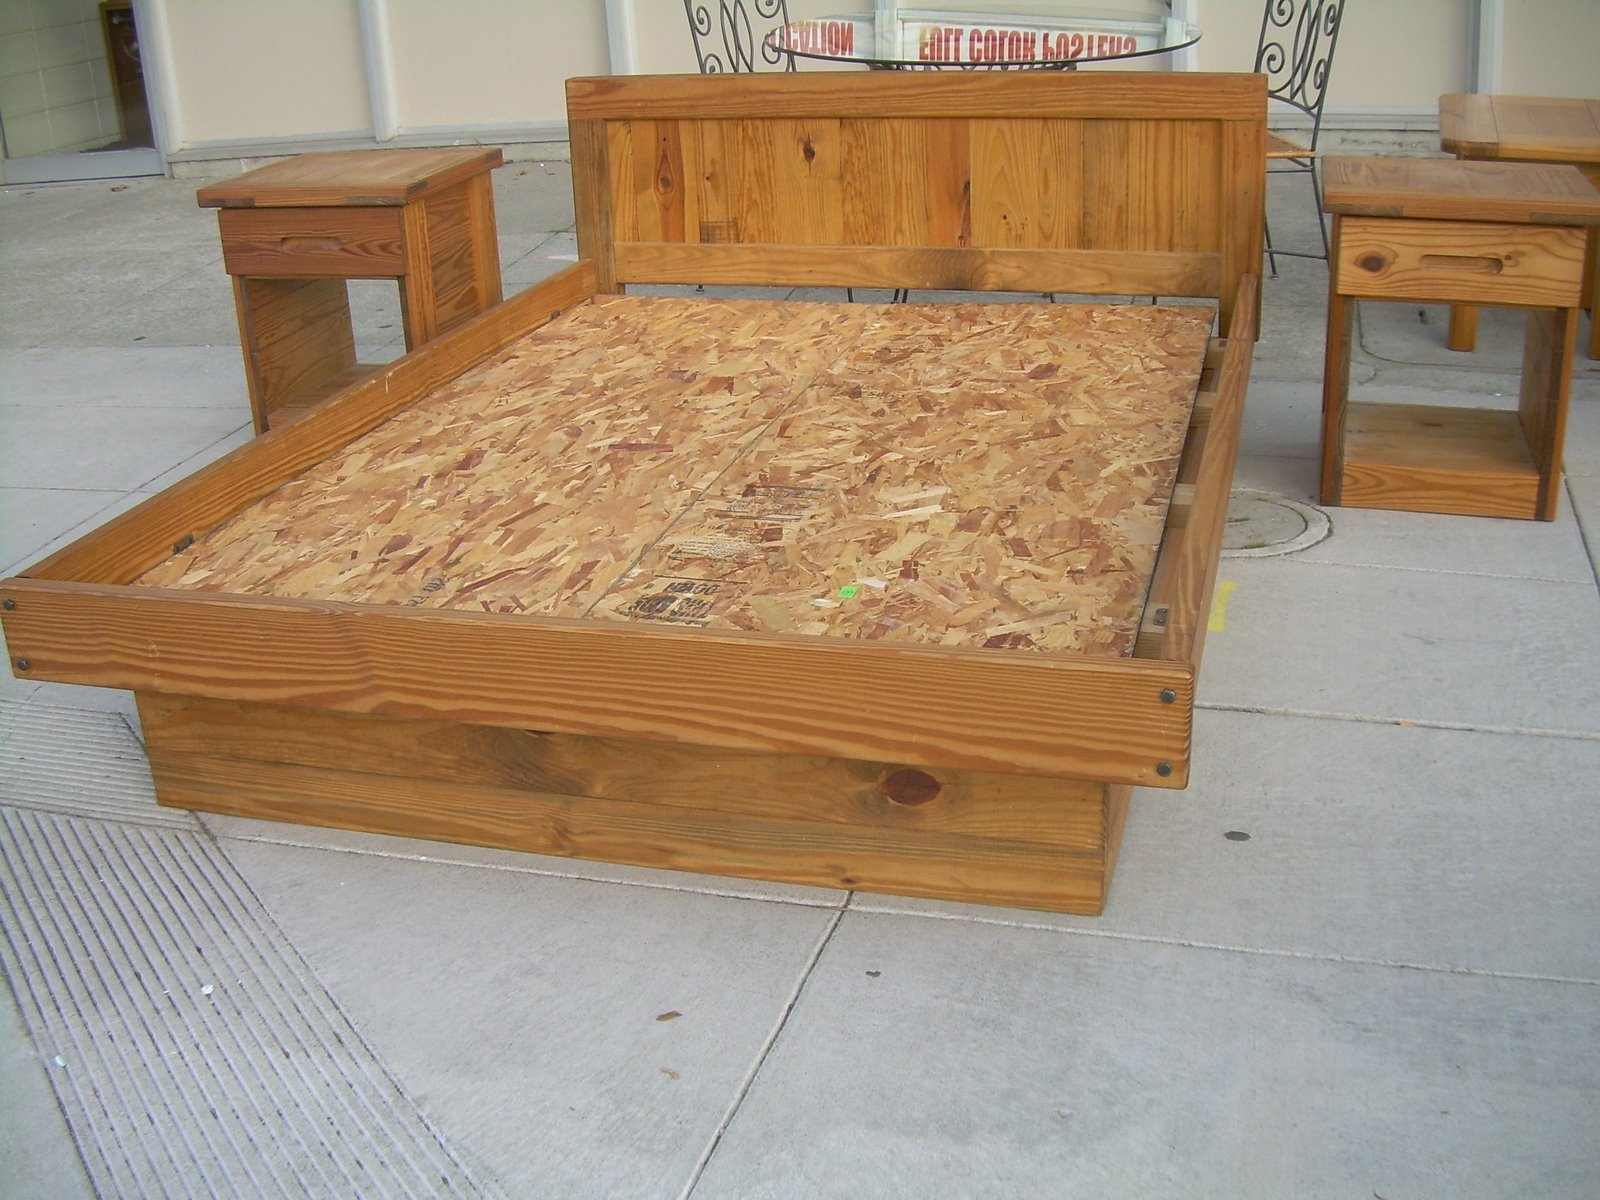 quality sofas midlands ltd 8 foot sofa oak beds at the galleria